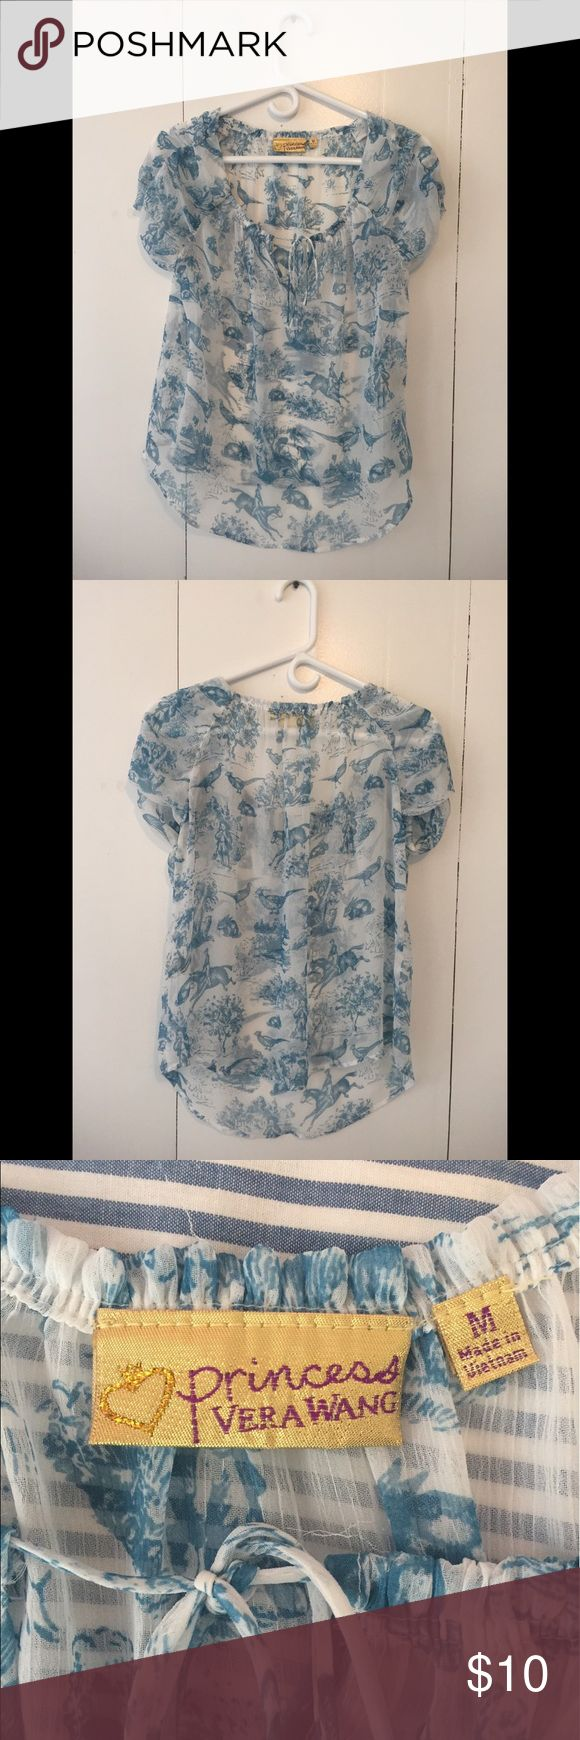 Blouse - Hunter Pattern Fun, comfortable blouse with old-time hunting scenes, light blue, short-sleeved Vera Wang Tops Blouses